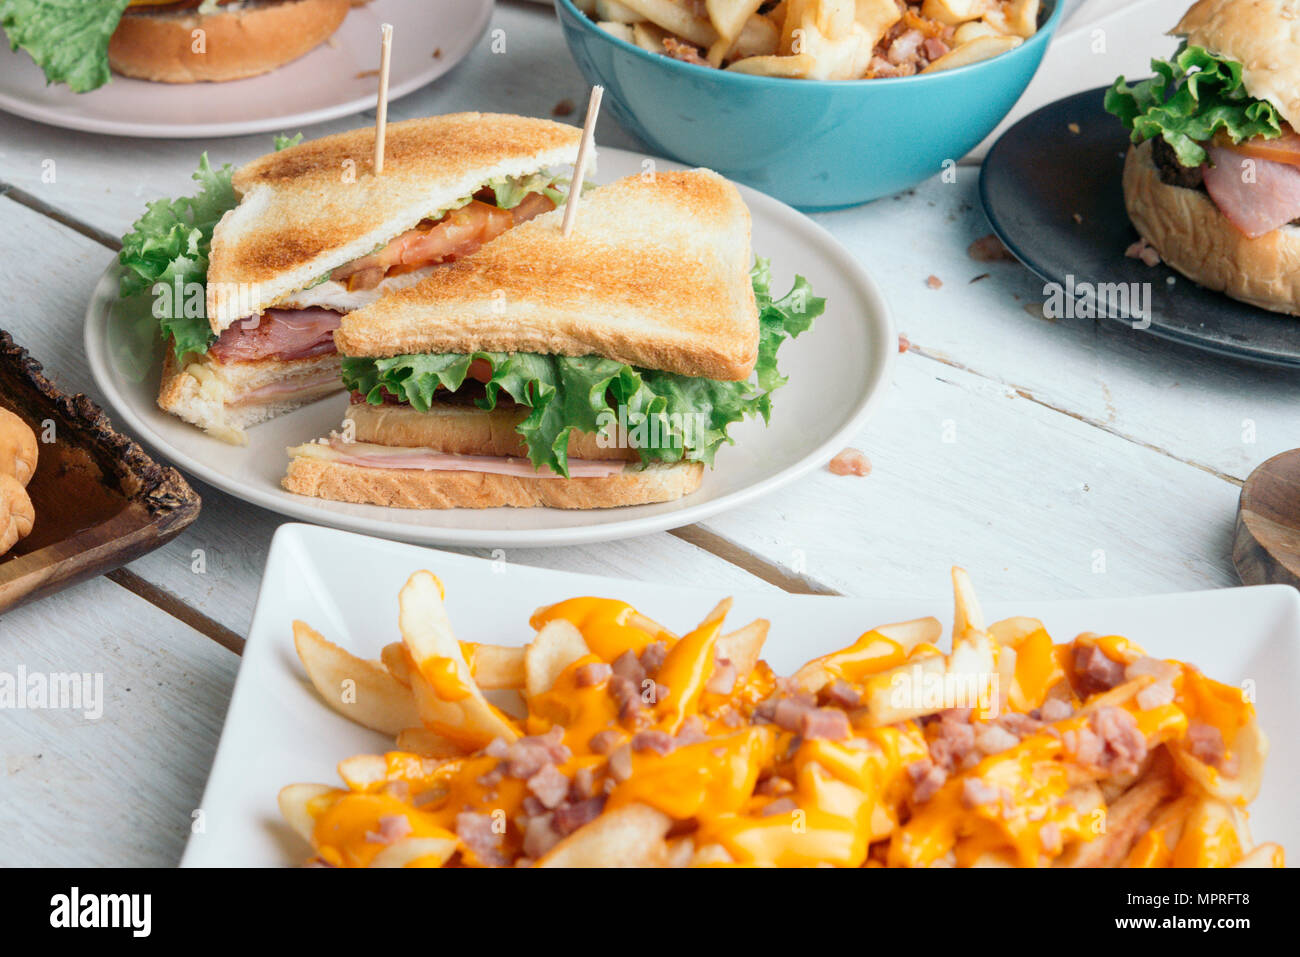 Table full of American food - Stock Image